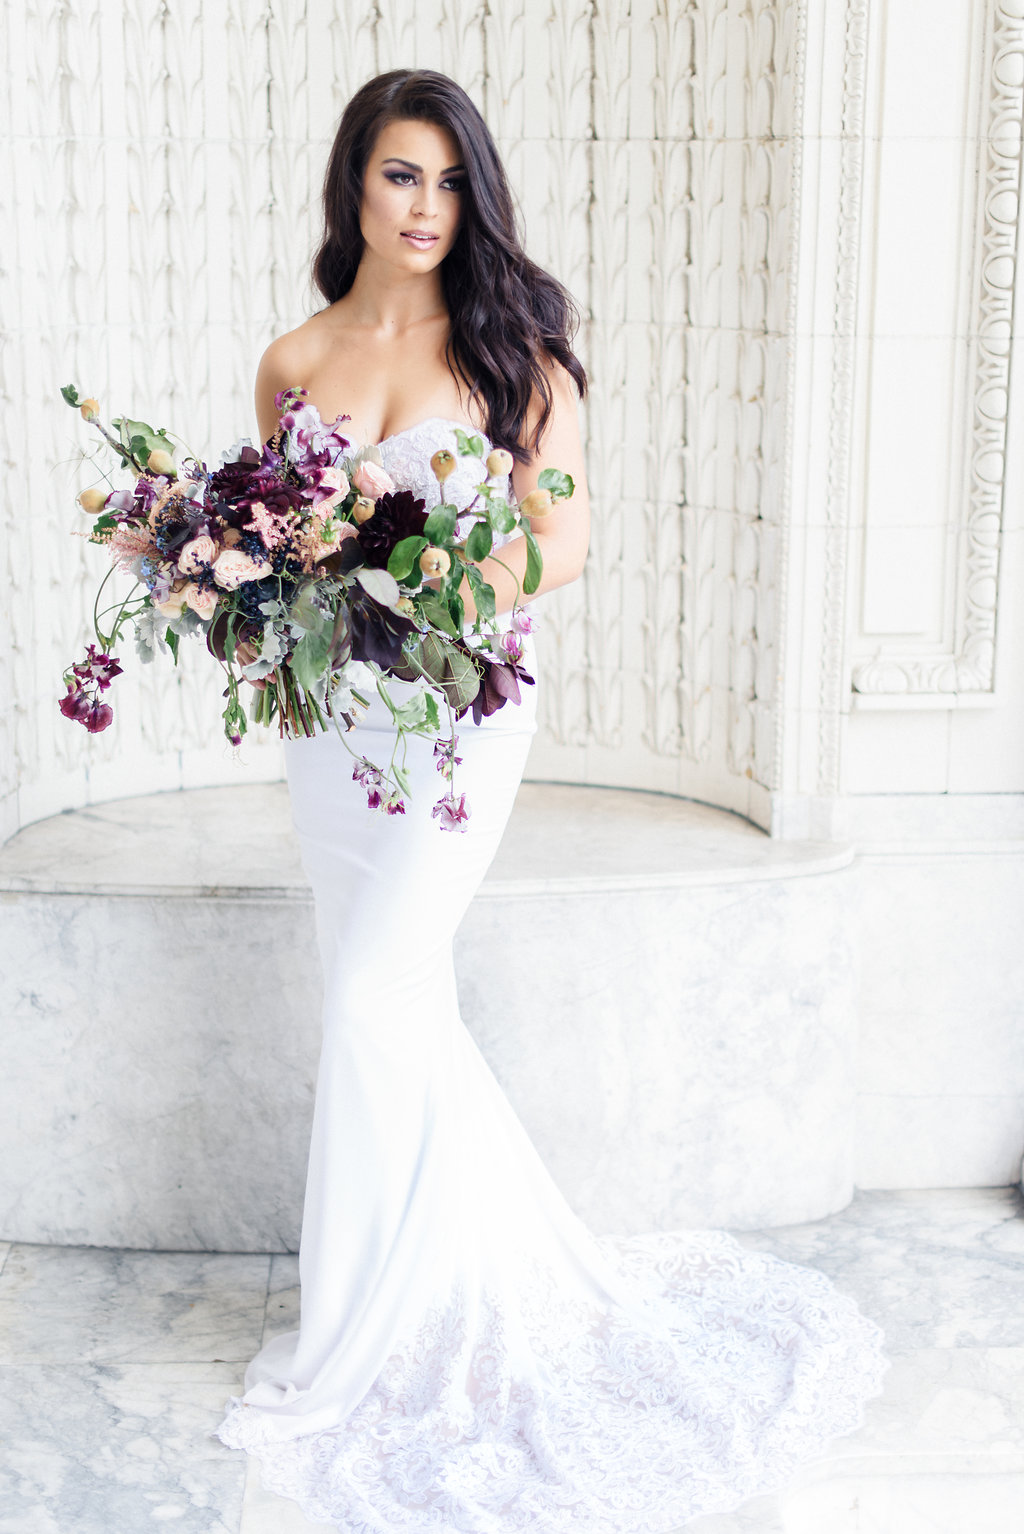 Wild, overgrown bridal bouquet of purple roses, blooming clematis vines, lavender roses, peonies - Bridal Bouquet Shapes designed by Flora Nova Design